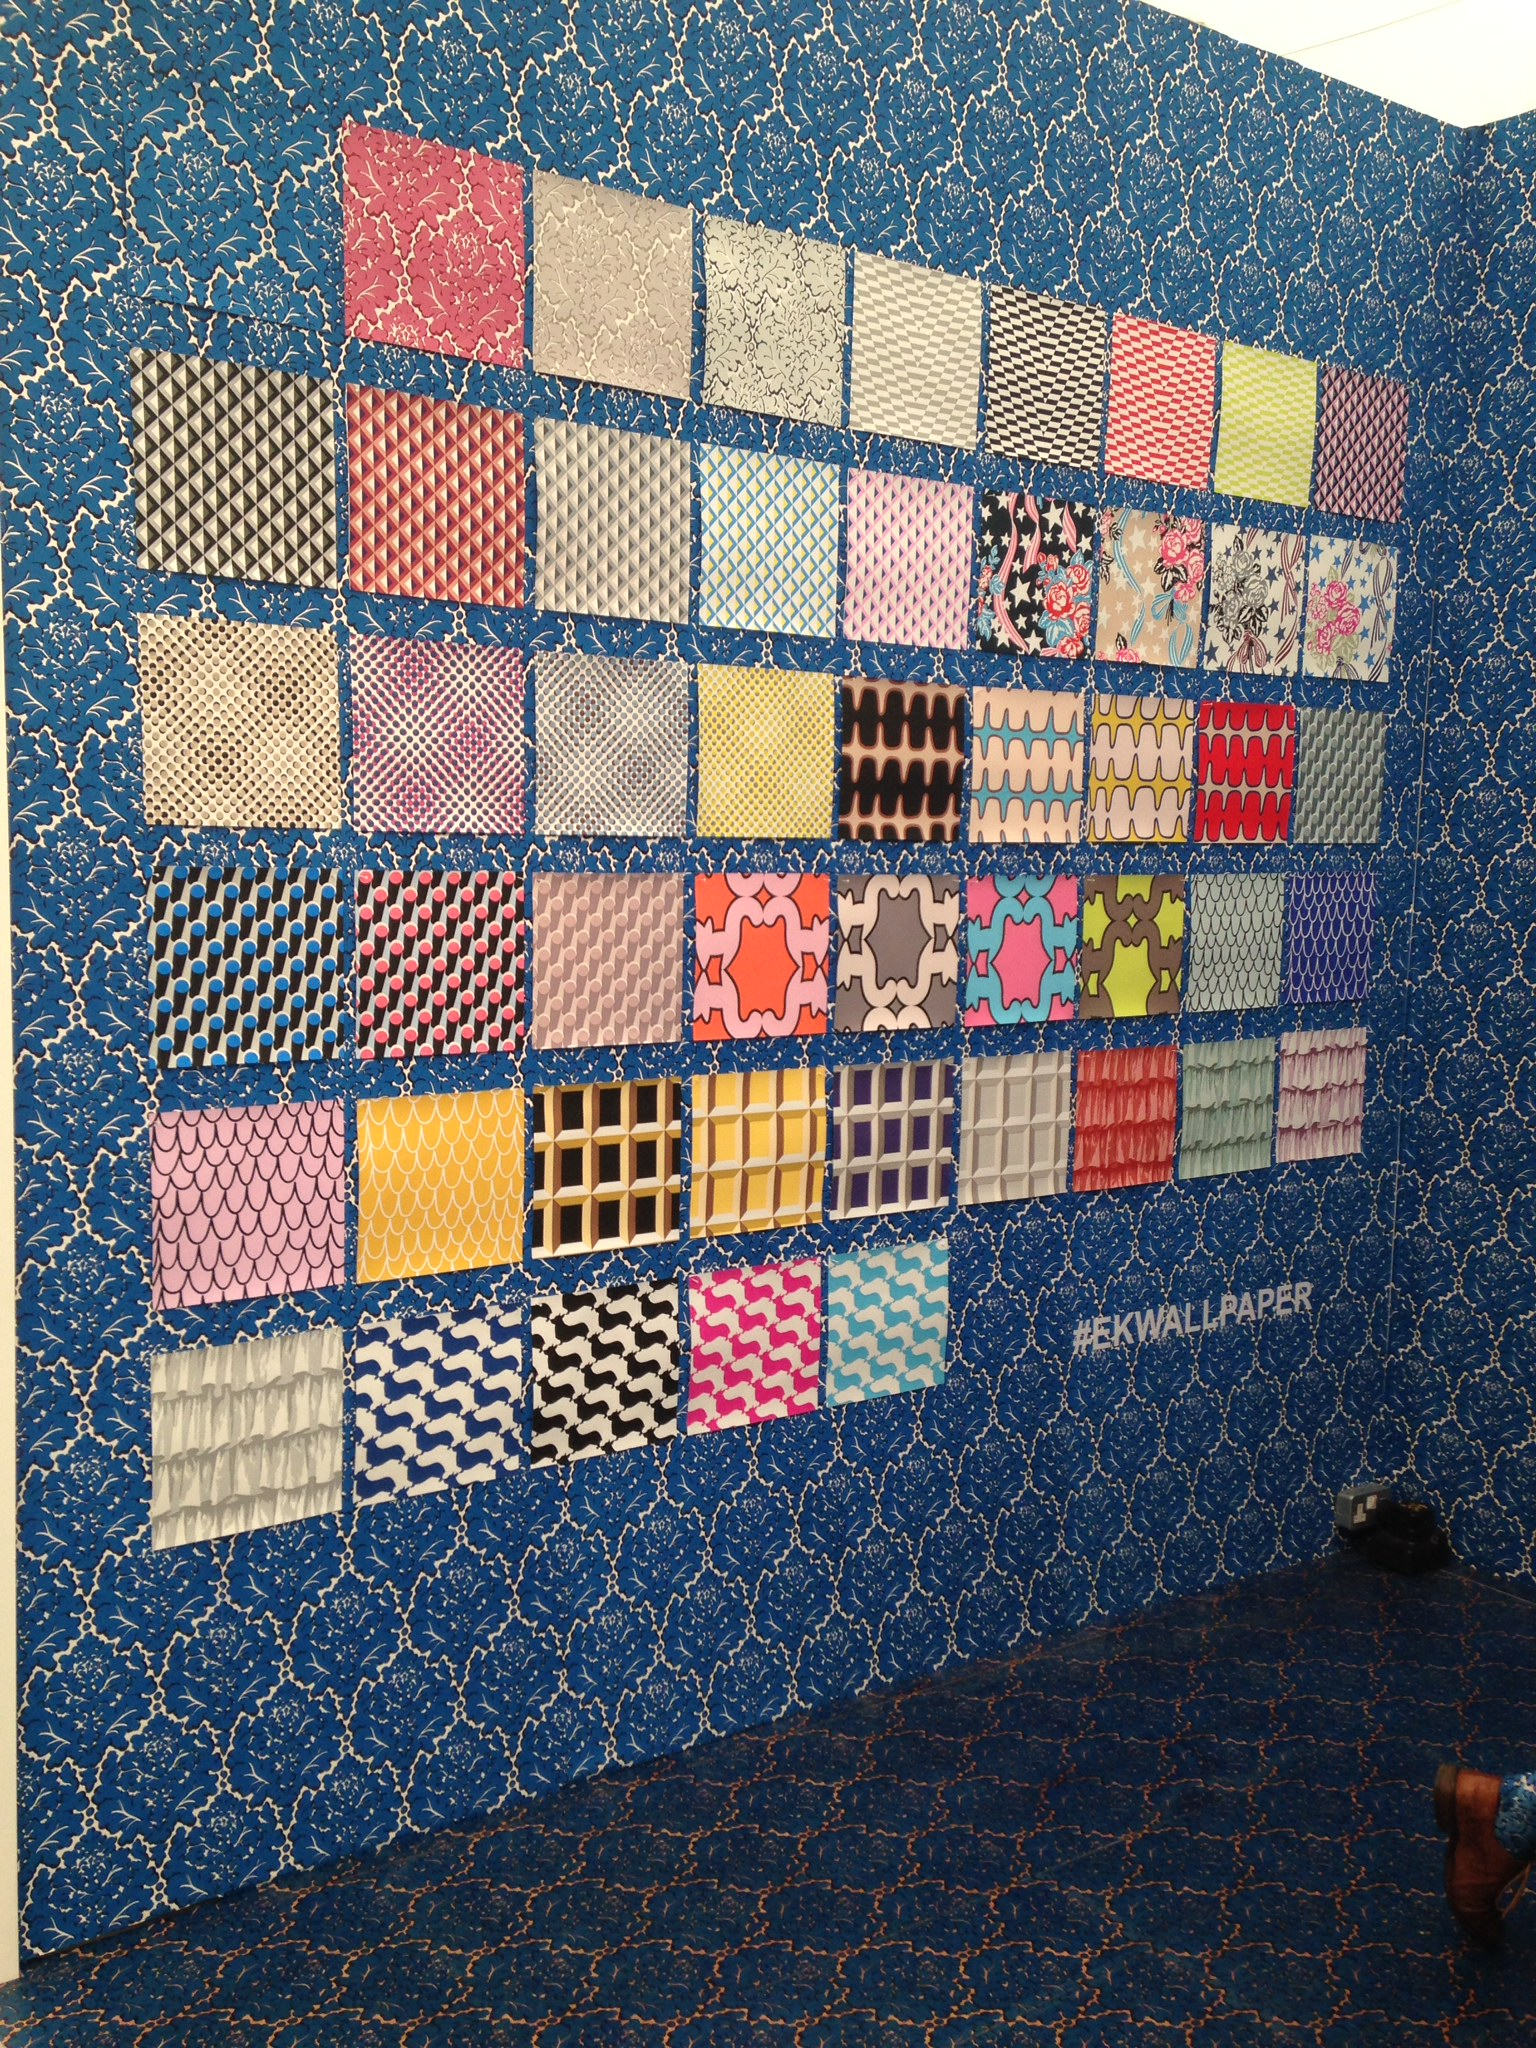 Eley Kishimoto won 2nd prize for best stand at Decorex 2014. It really was v striking.